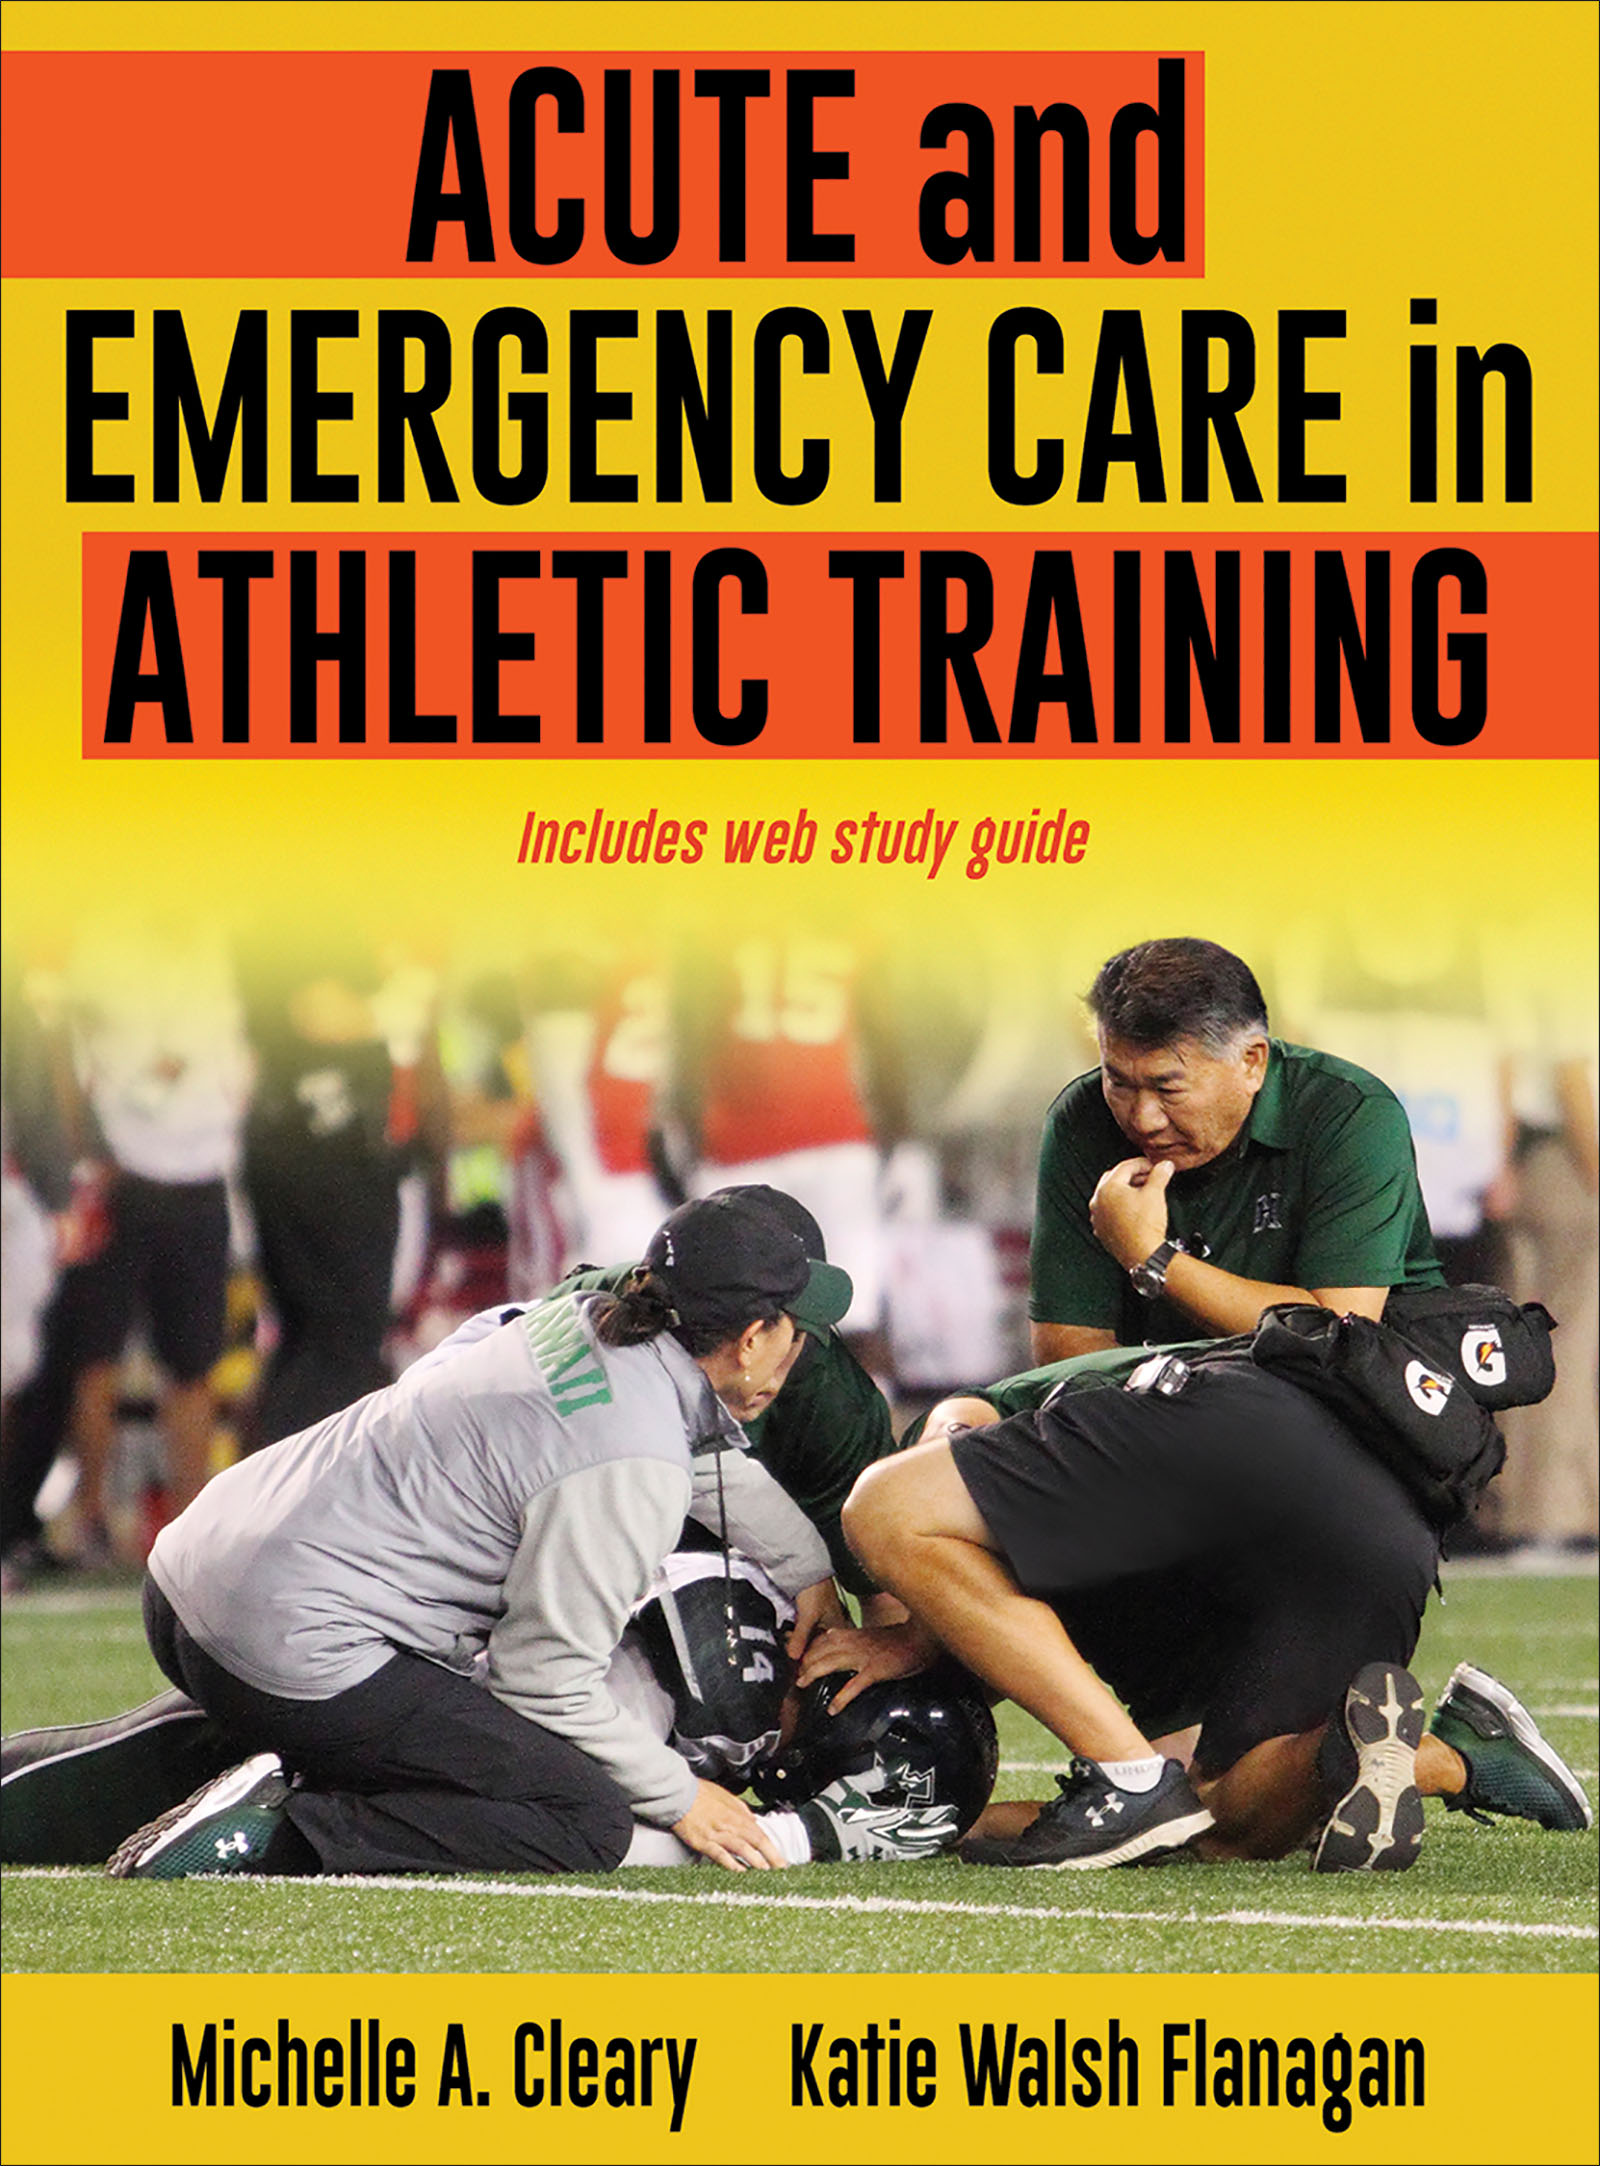 Acute and Emergency Care in Athletic Training With Web Study Guide